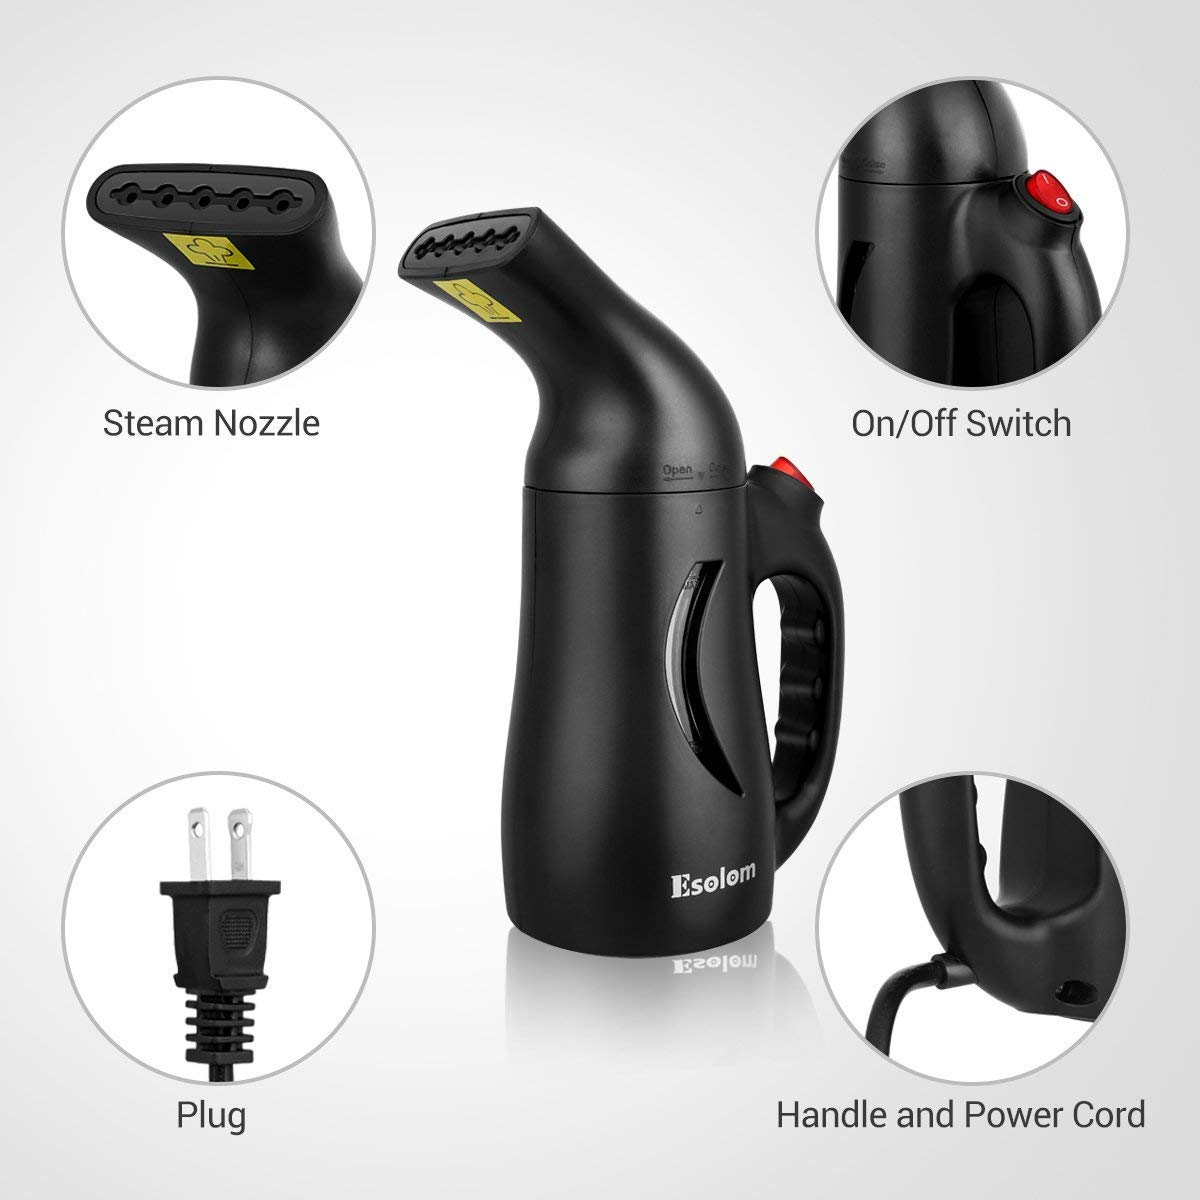 Handheld Clothes Steamer, ESOLOM Portable Travel Garment Steamer for Clothes Hand Steamer Wrinkle Remover with Automatic Shut-off and Fast Heat-up Function Safe Use for Travel and Home, 130ml-Black by ESOLOM (Image #2)